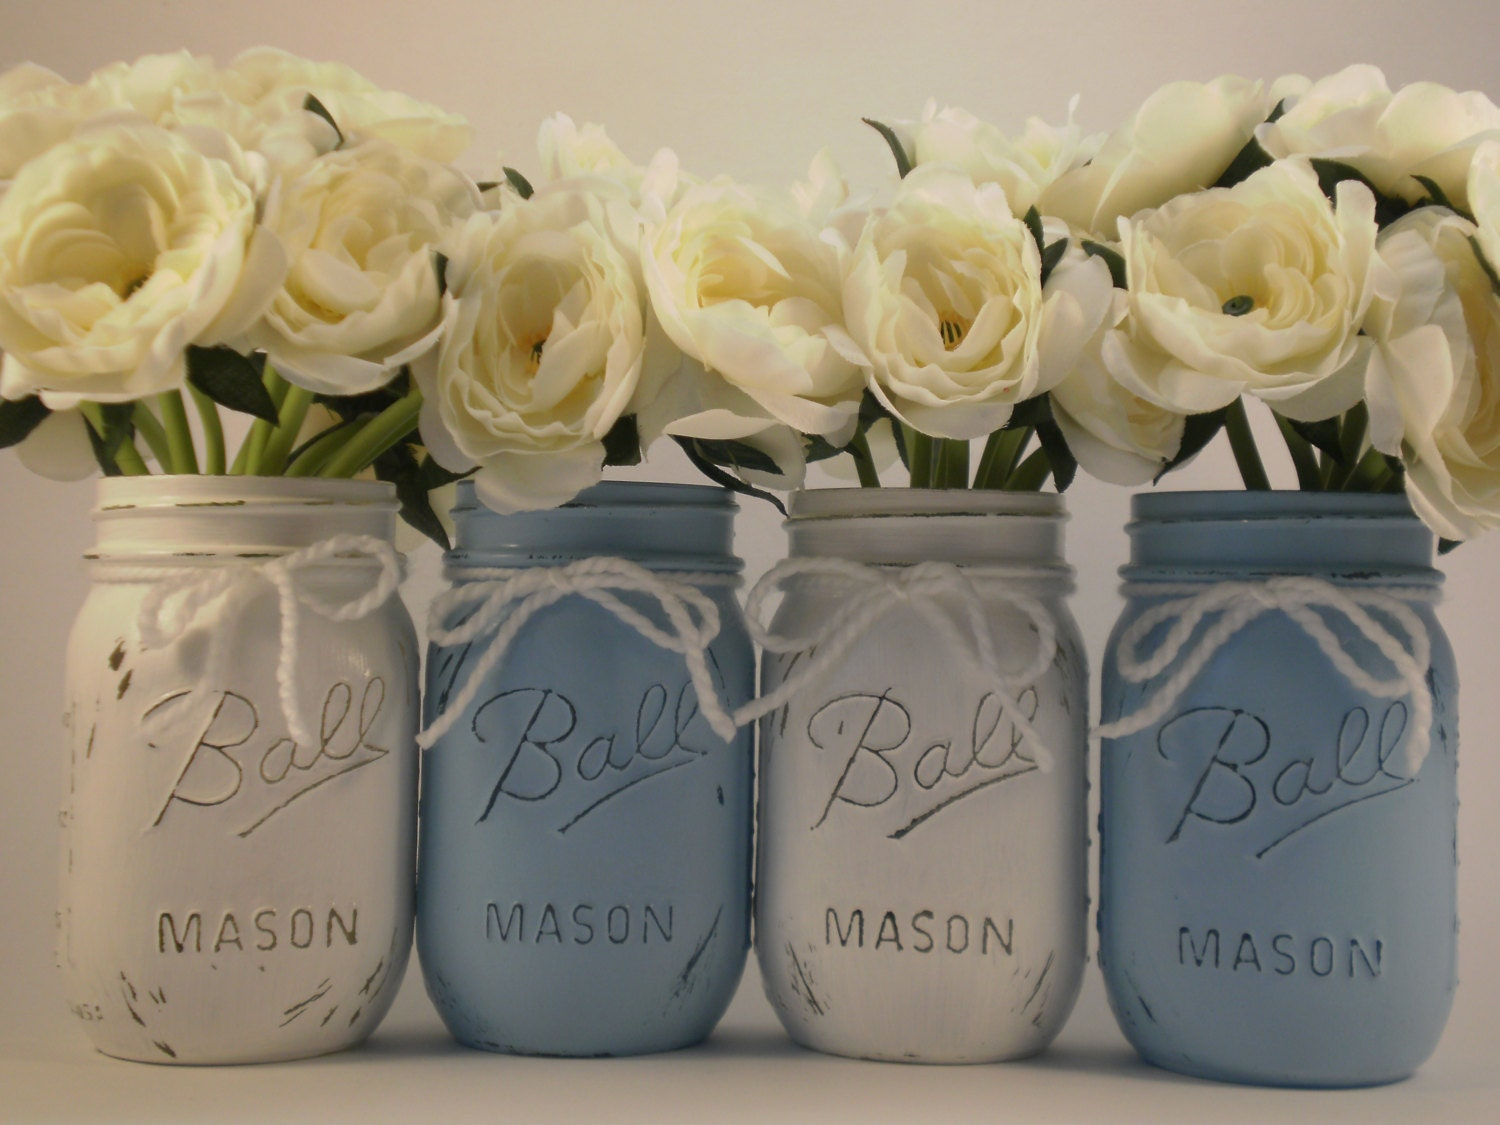 ... For Baby Boy Centerpieces Shower Baby Centerpieces Mason Boy Jar Shower  For Centerpiece Shower Baby ...